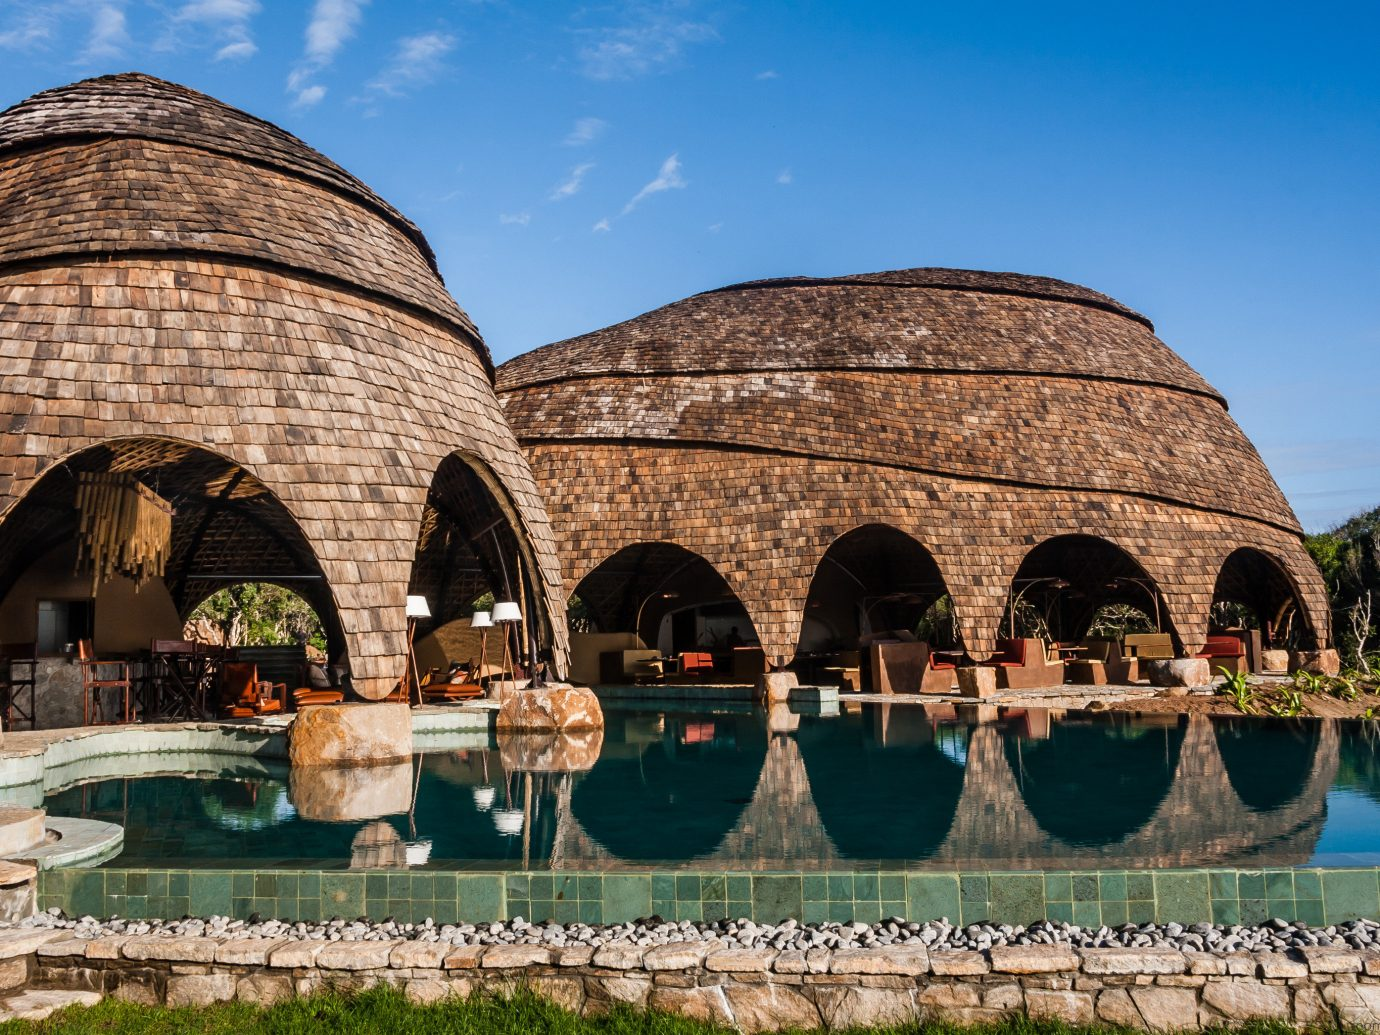 Hotels Outdoors + Adventure historic site sky tourism leisure reflection tourist attraction caravanserai estate hacienda building water byzantine architecture ancient history